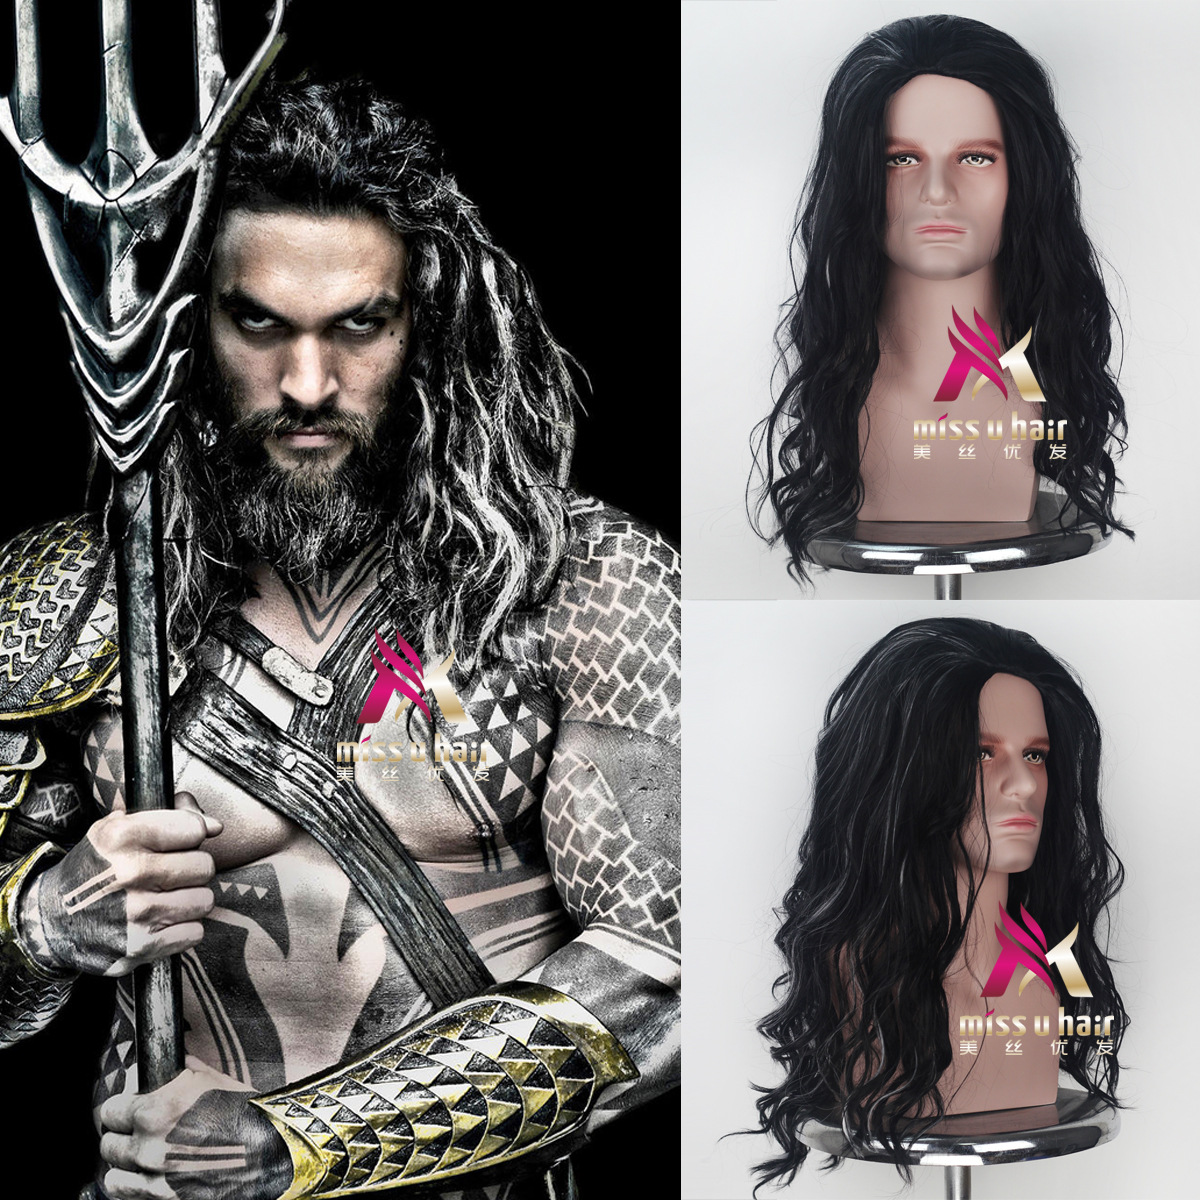 Movie Justice League Aquaman Wig Aquaman Role Play Hair Comic Cosplay Jason Momoa Wig Carnival Brown Hair for Men Adult Cosplay